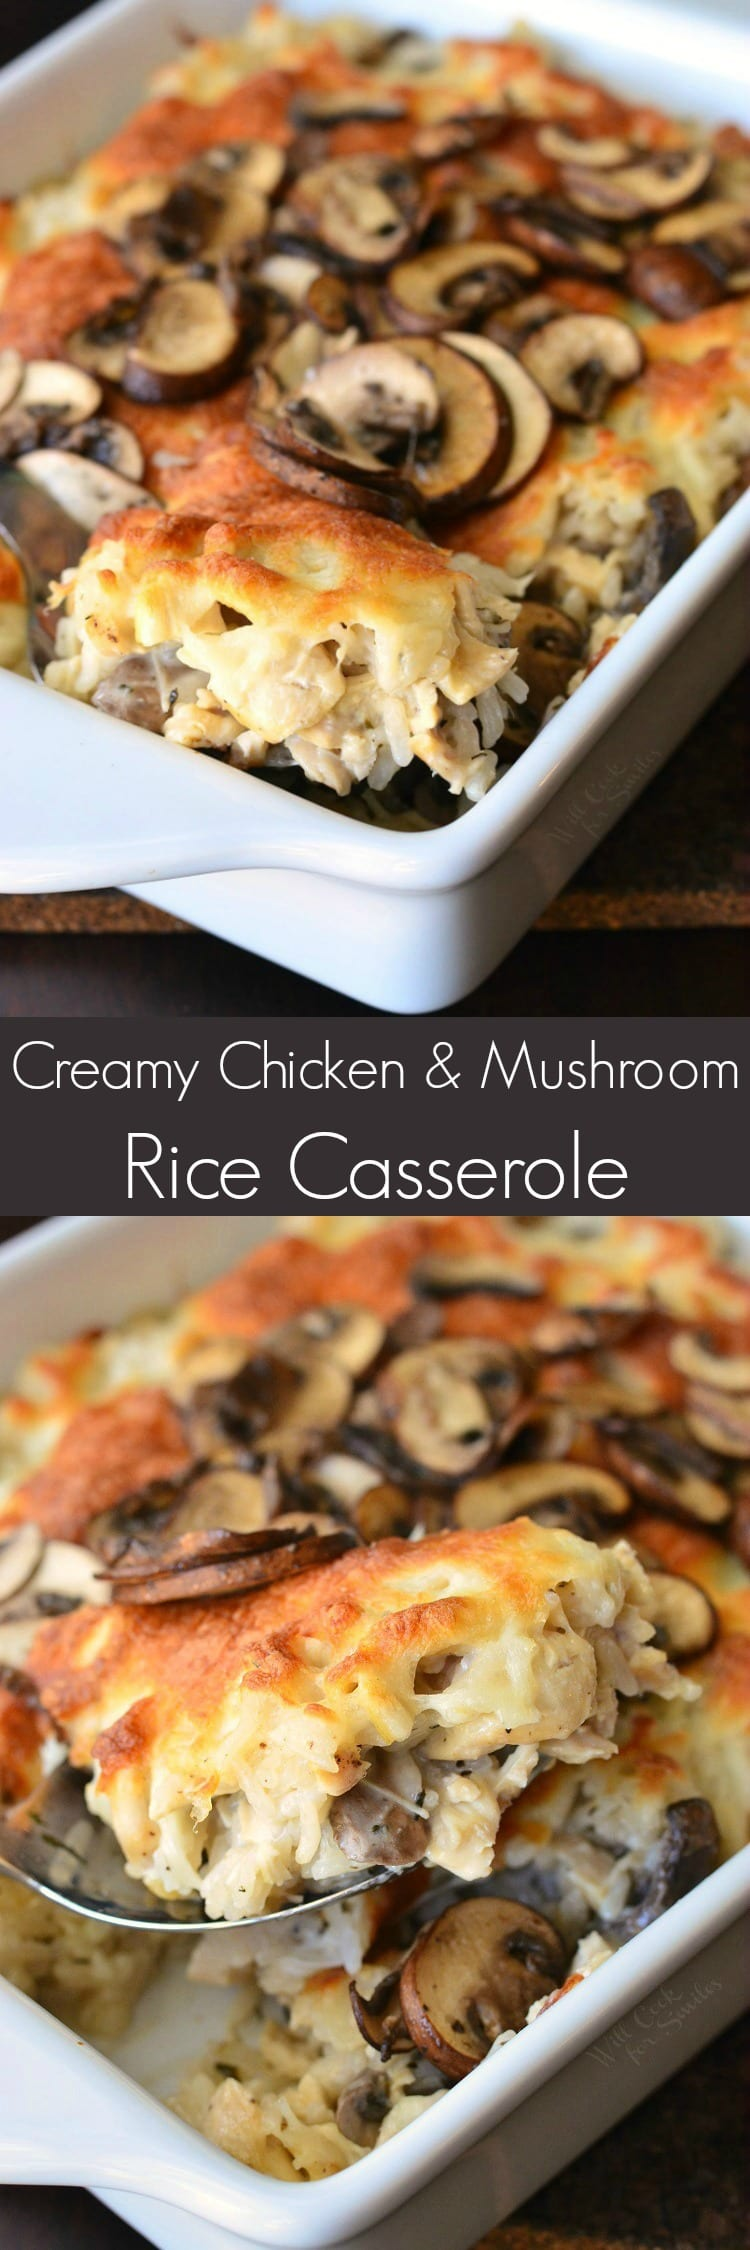 photo collage of spooning Creamy Chicken Mushroom Rice Casserole in a white baking dish